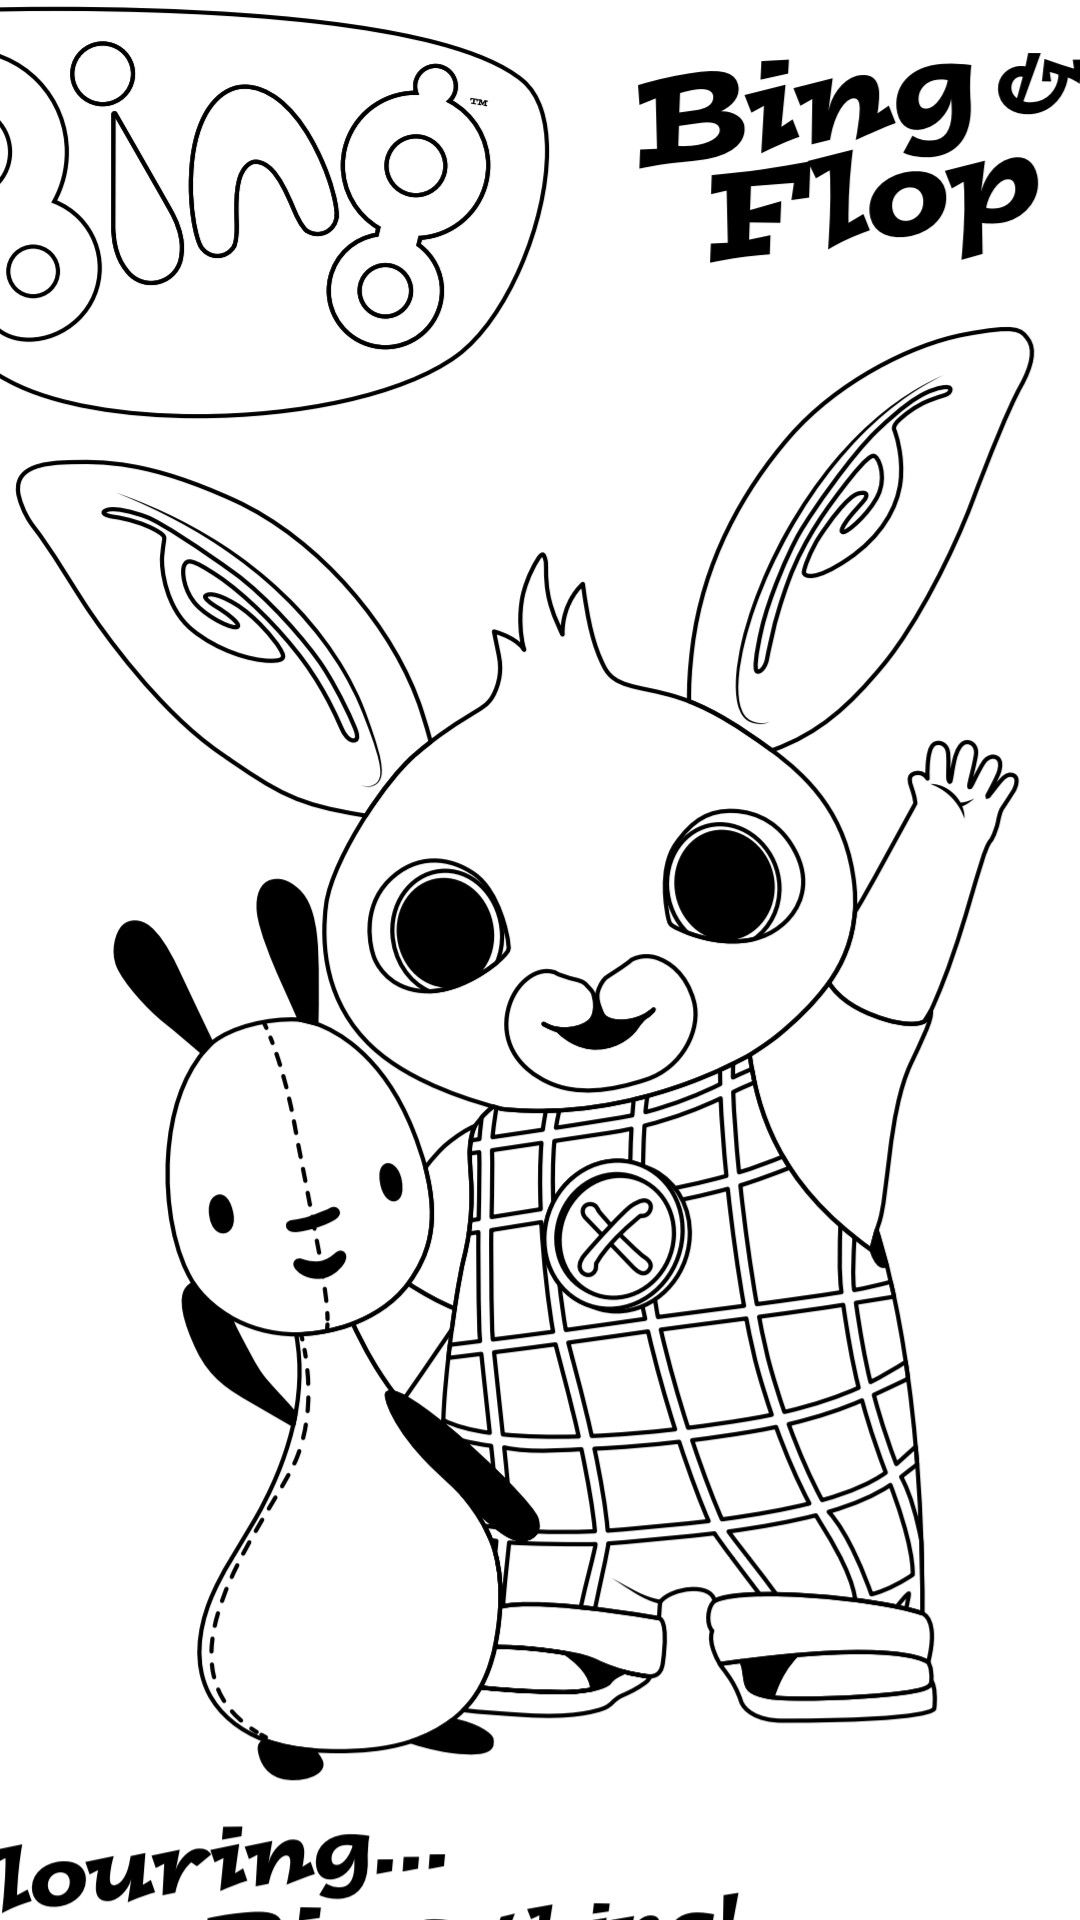 Pin By Ruth Bross On Digi Bing Bunny Coloring Pages Bing